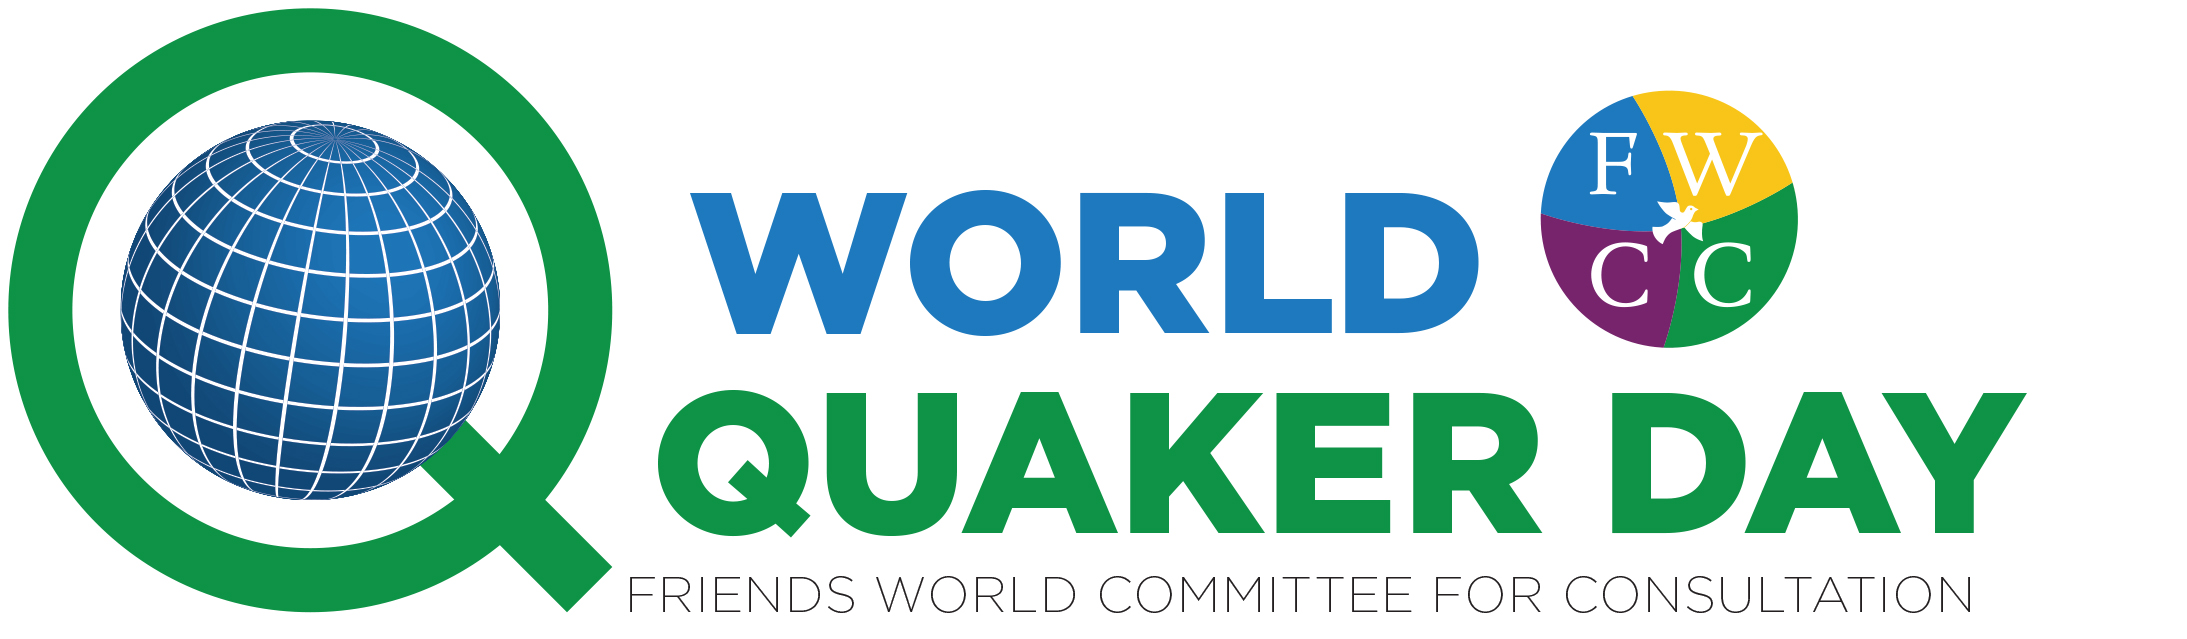 World Quaker Day